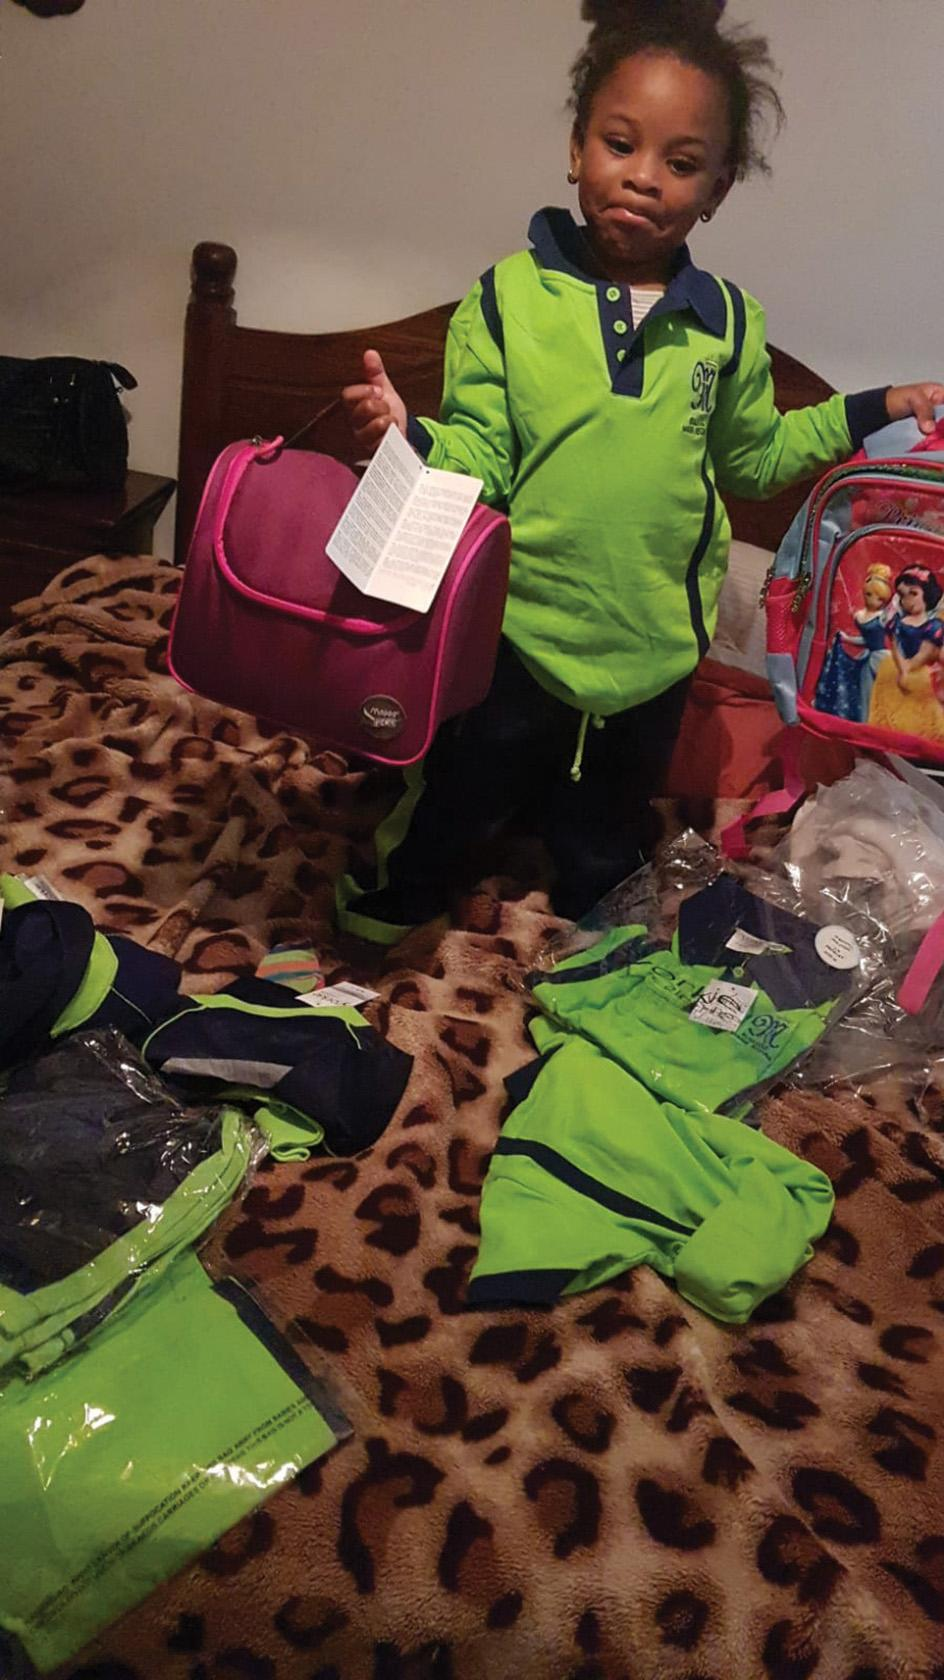 Heavenly Edafe Agoda with her new school uniform and other school items.